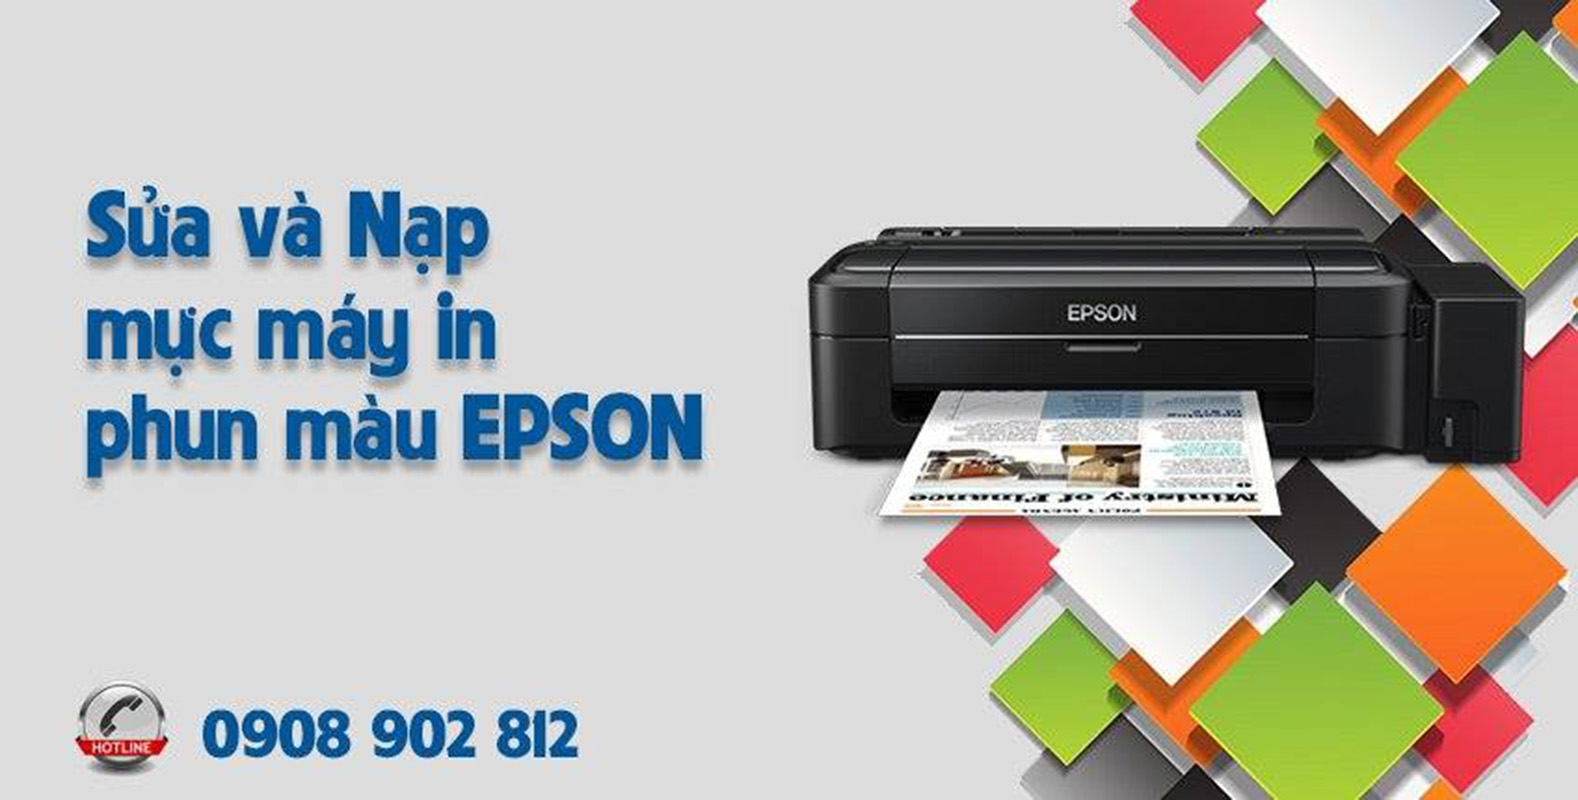 Nạp mực máy in Epson (@napmucmayinepson) Cover Image